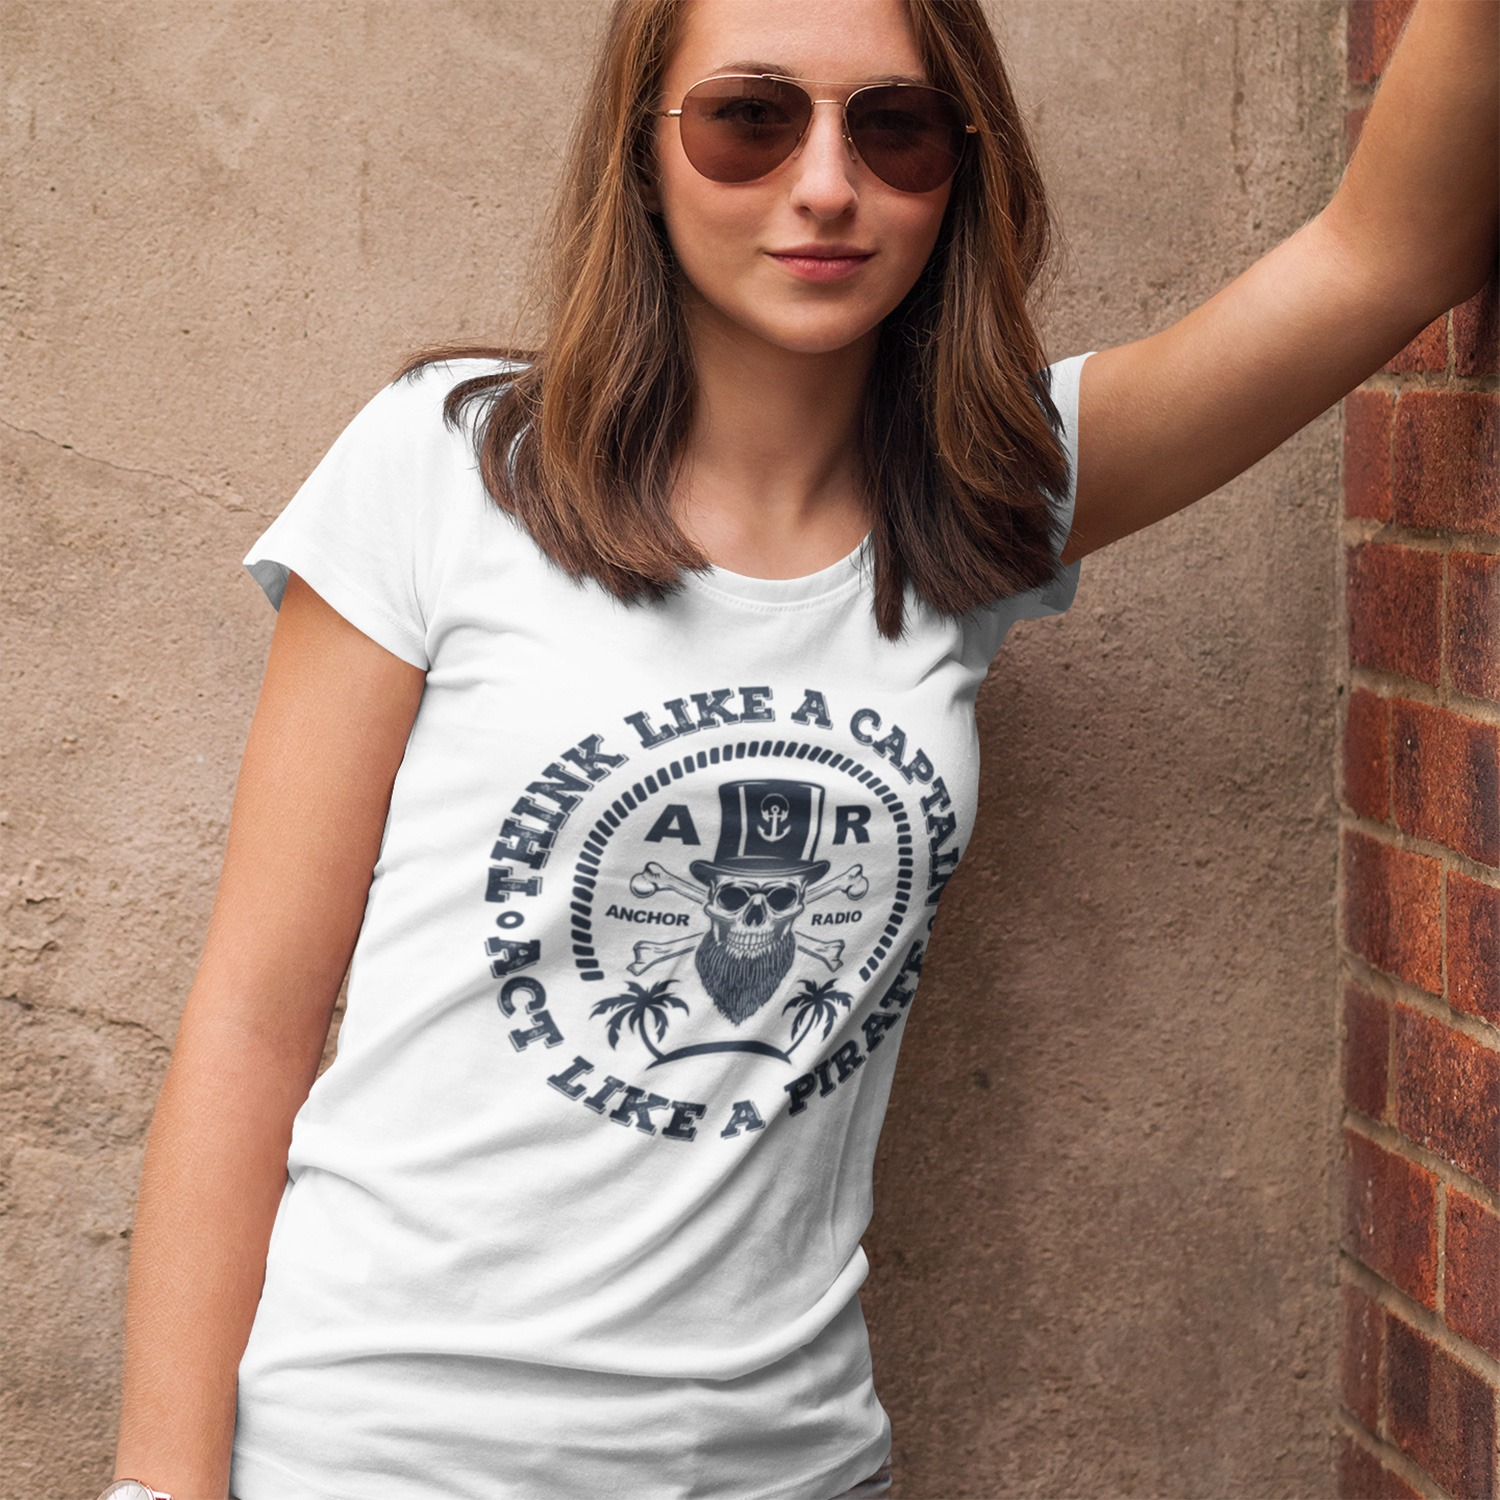 Anchor Radio Show Pirate Ladies Fitted Tee, The Troprock Shop